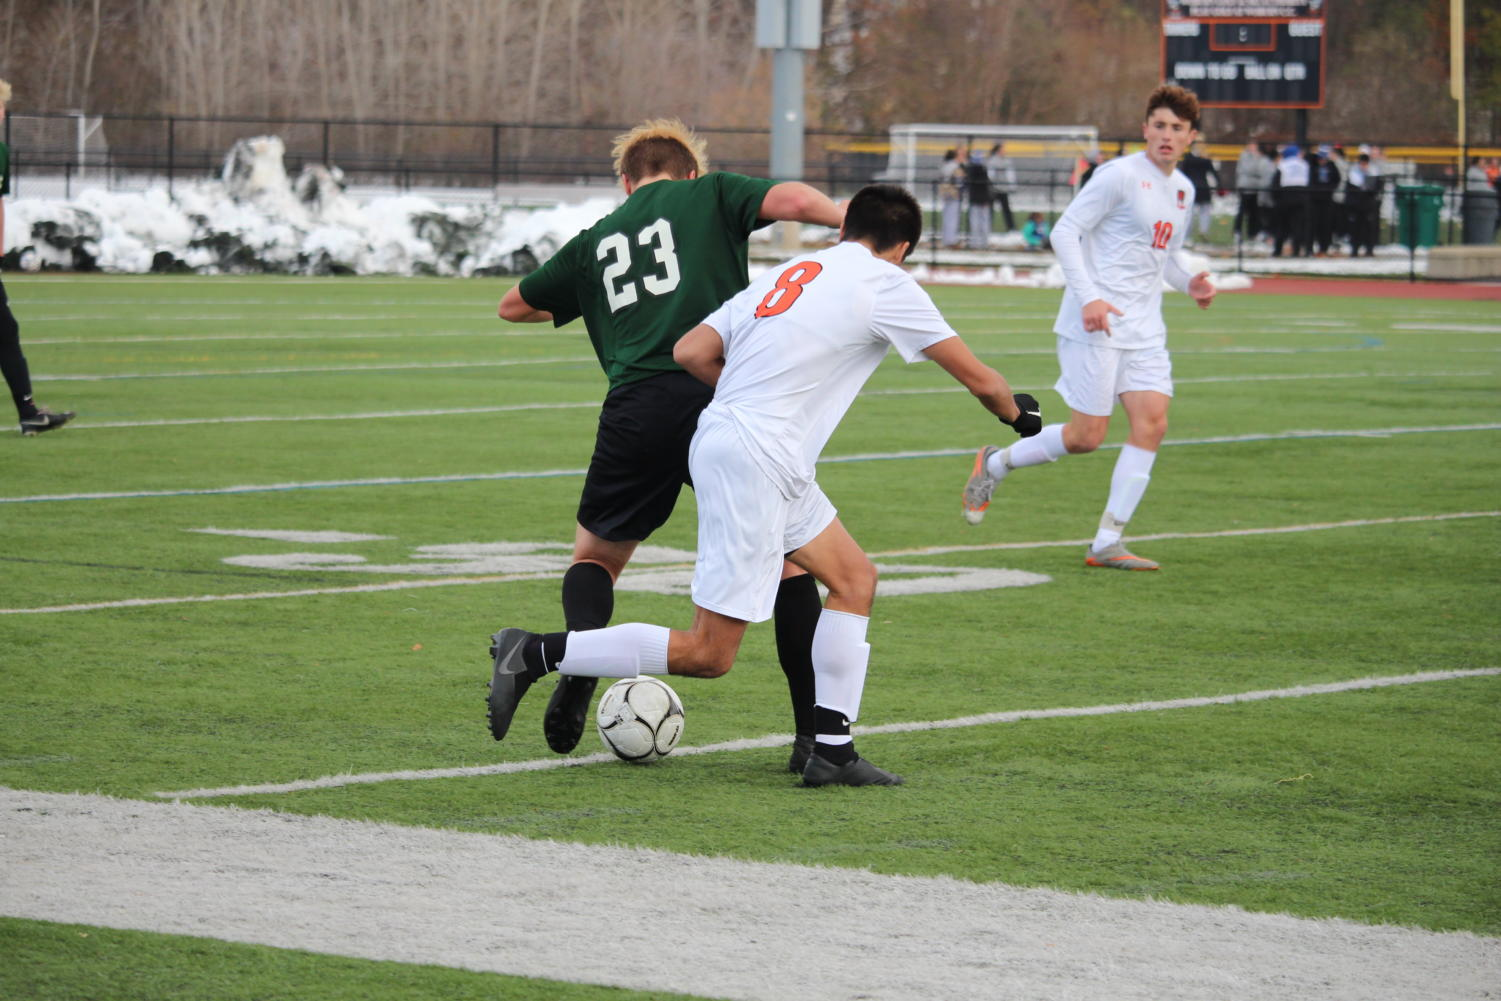 Wong+pursues+a+Nipmuc+player+as+he+tries+to+get+the+ball.